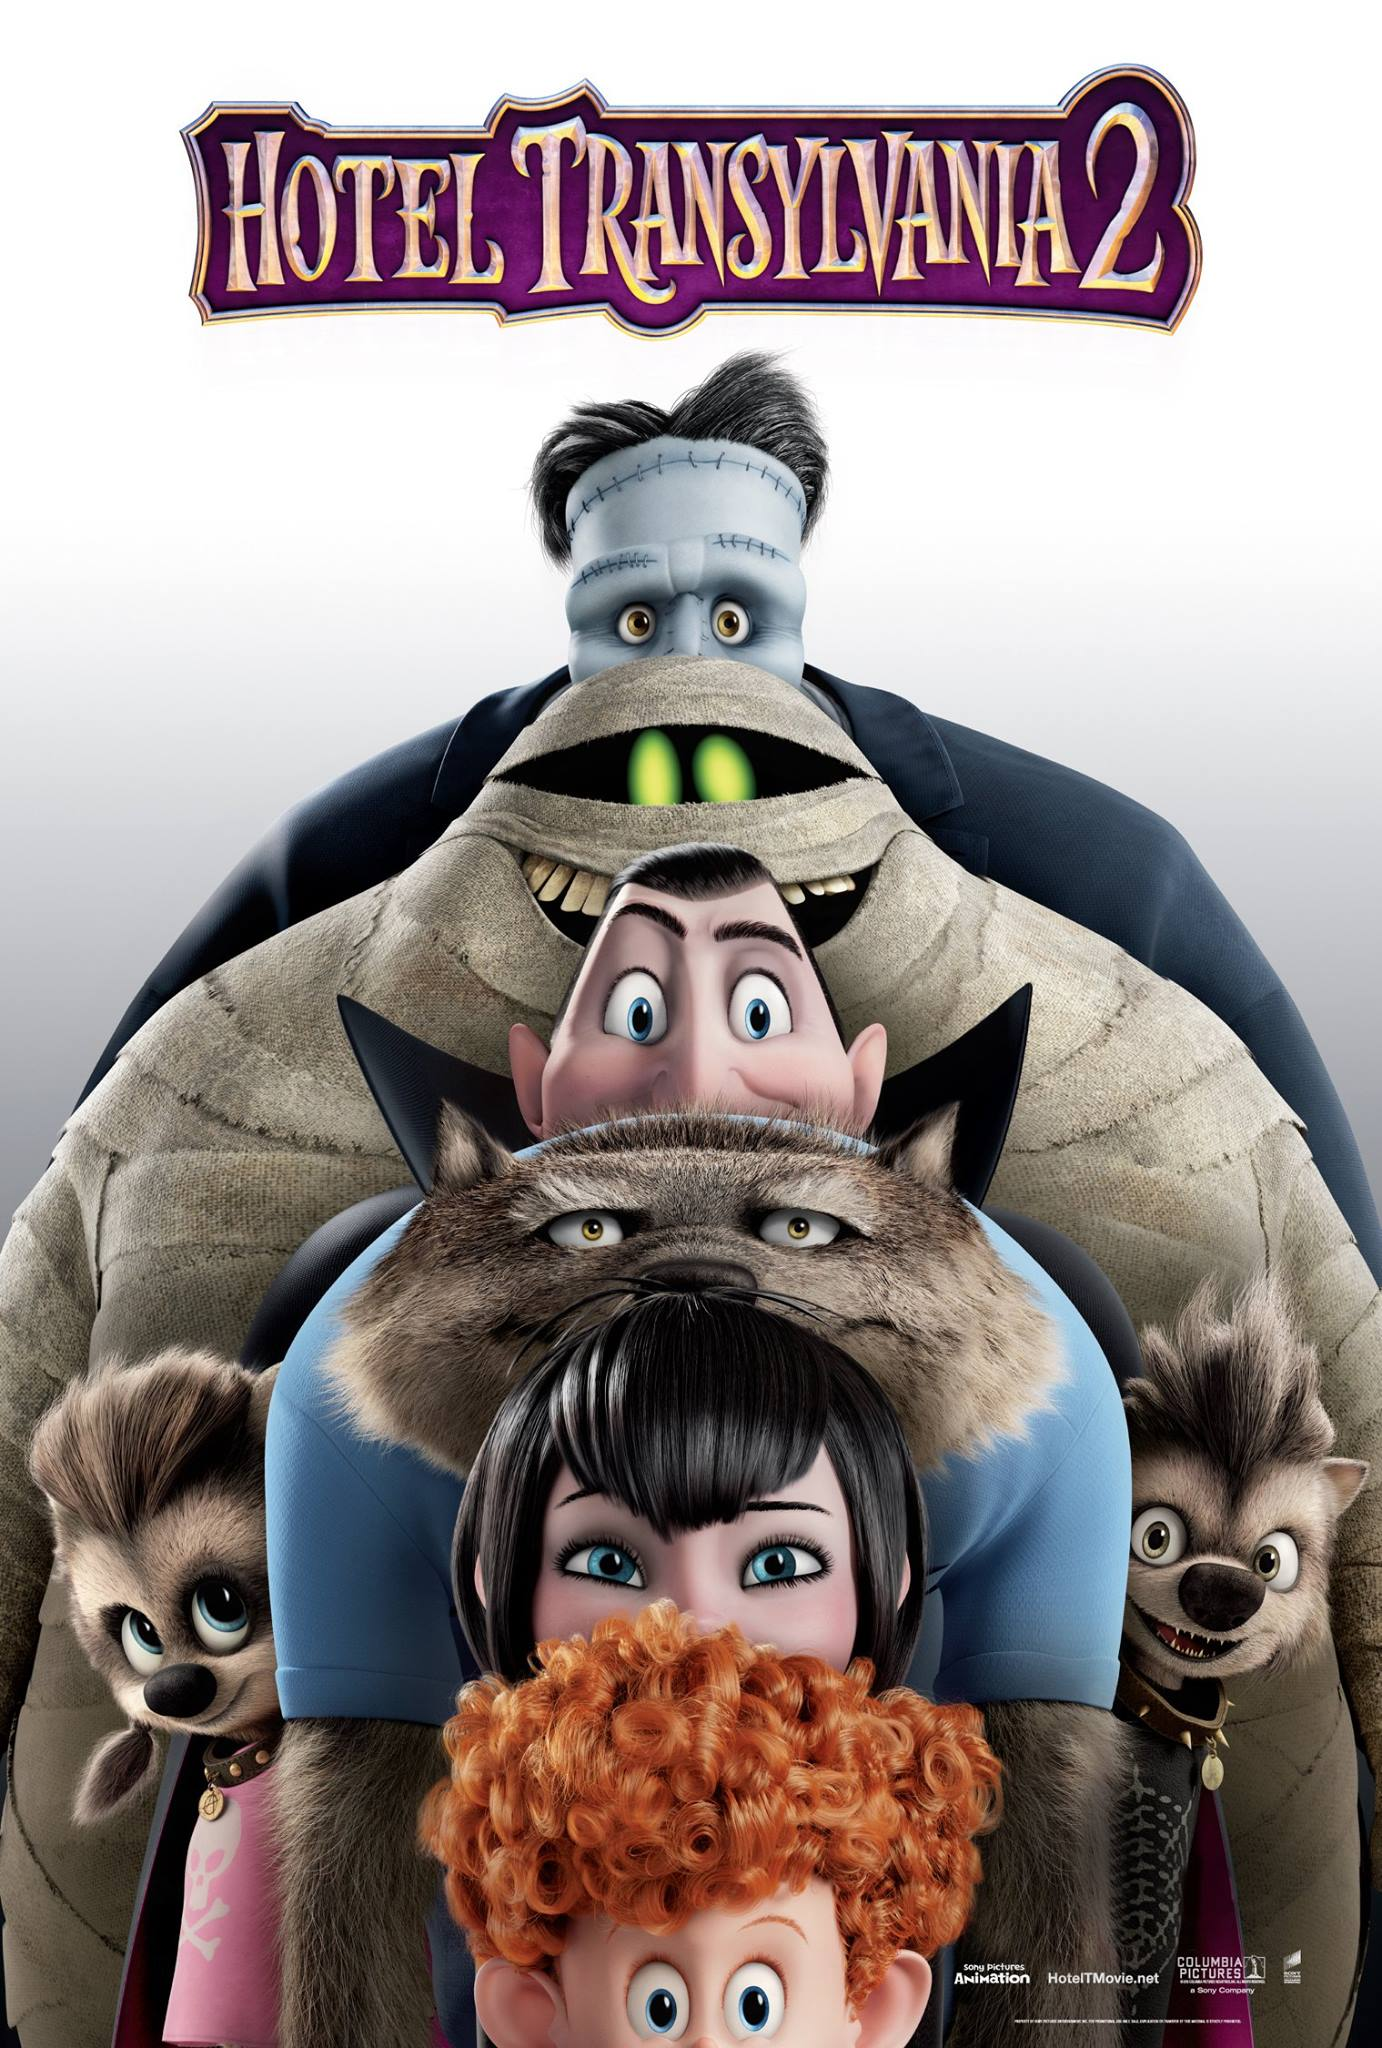 A New Hotel Transylvania 2 Poster Features a Monstrous ...